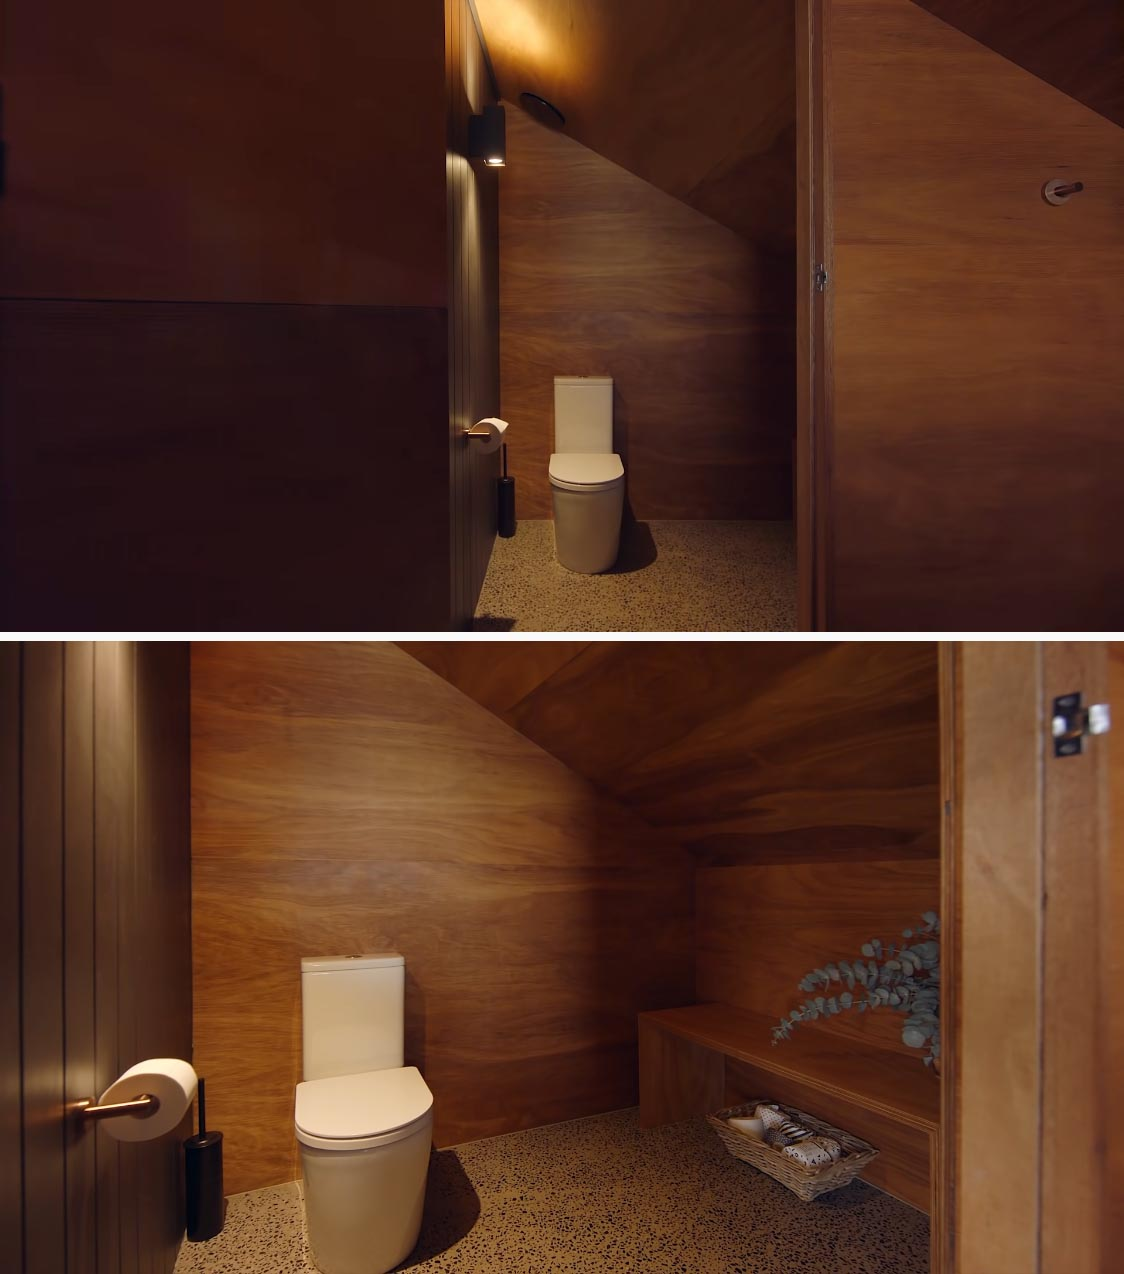 A wood-lined toilet room in an off-grid tiny home.